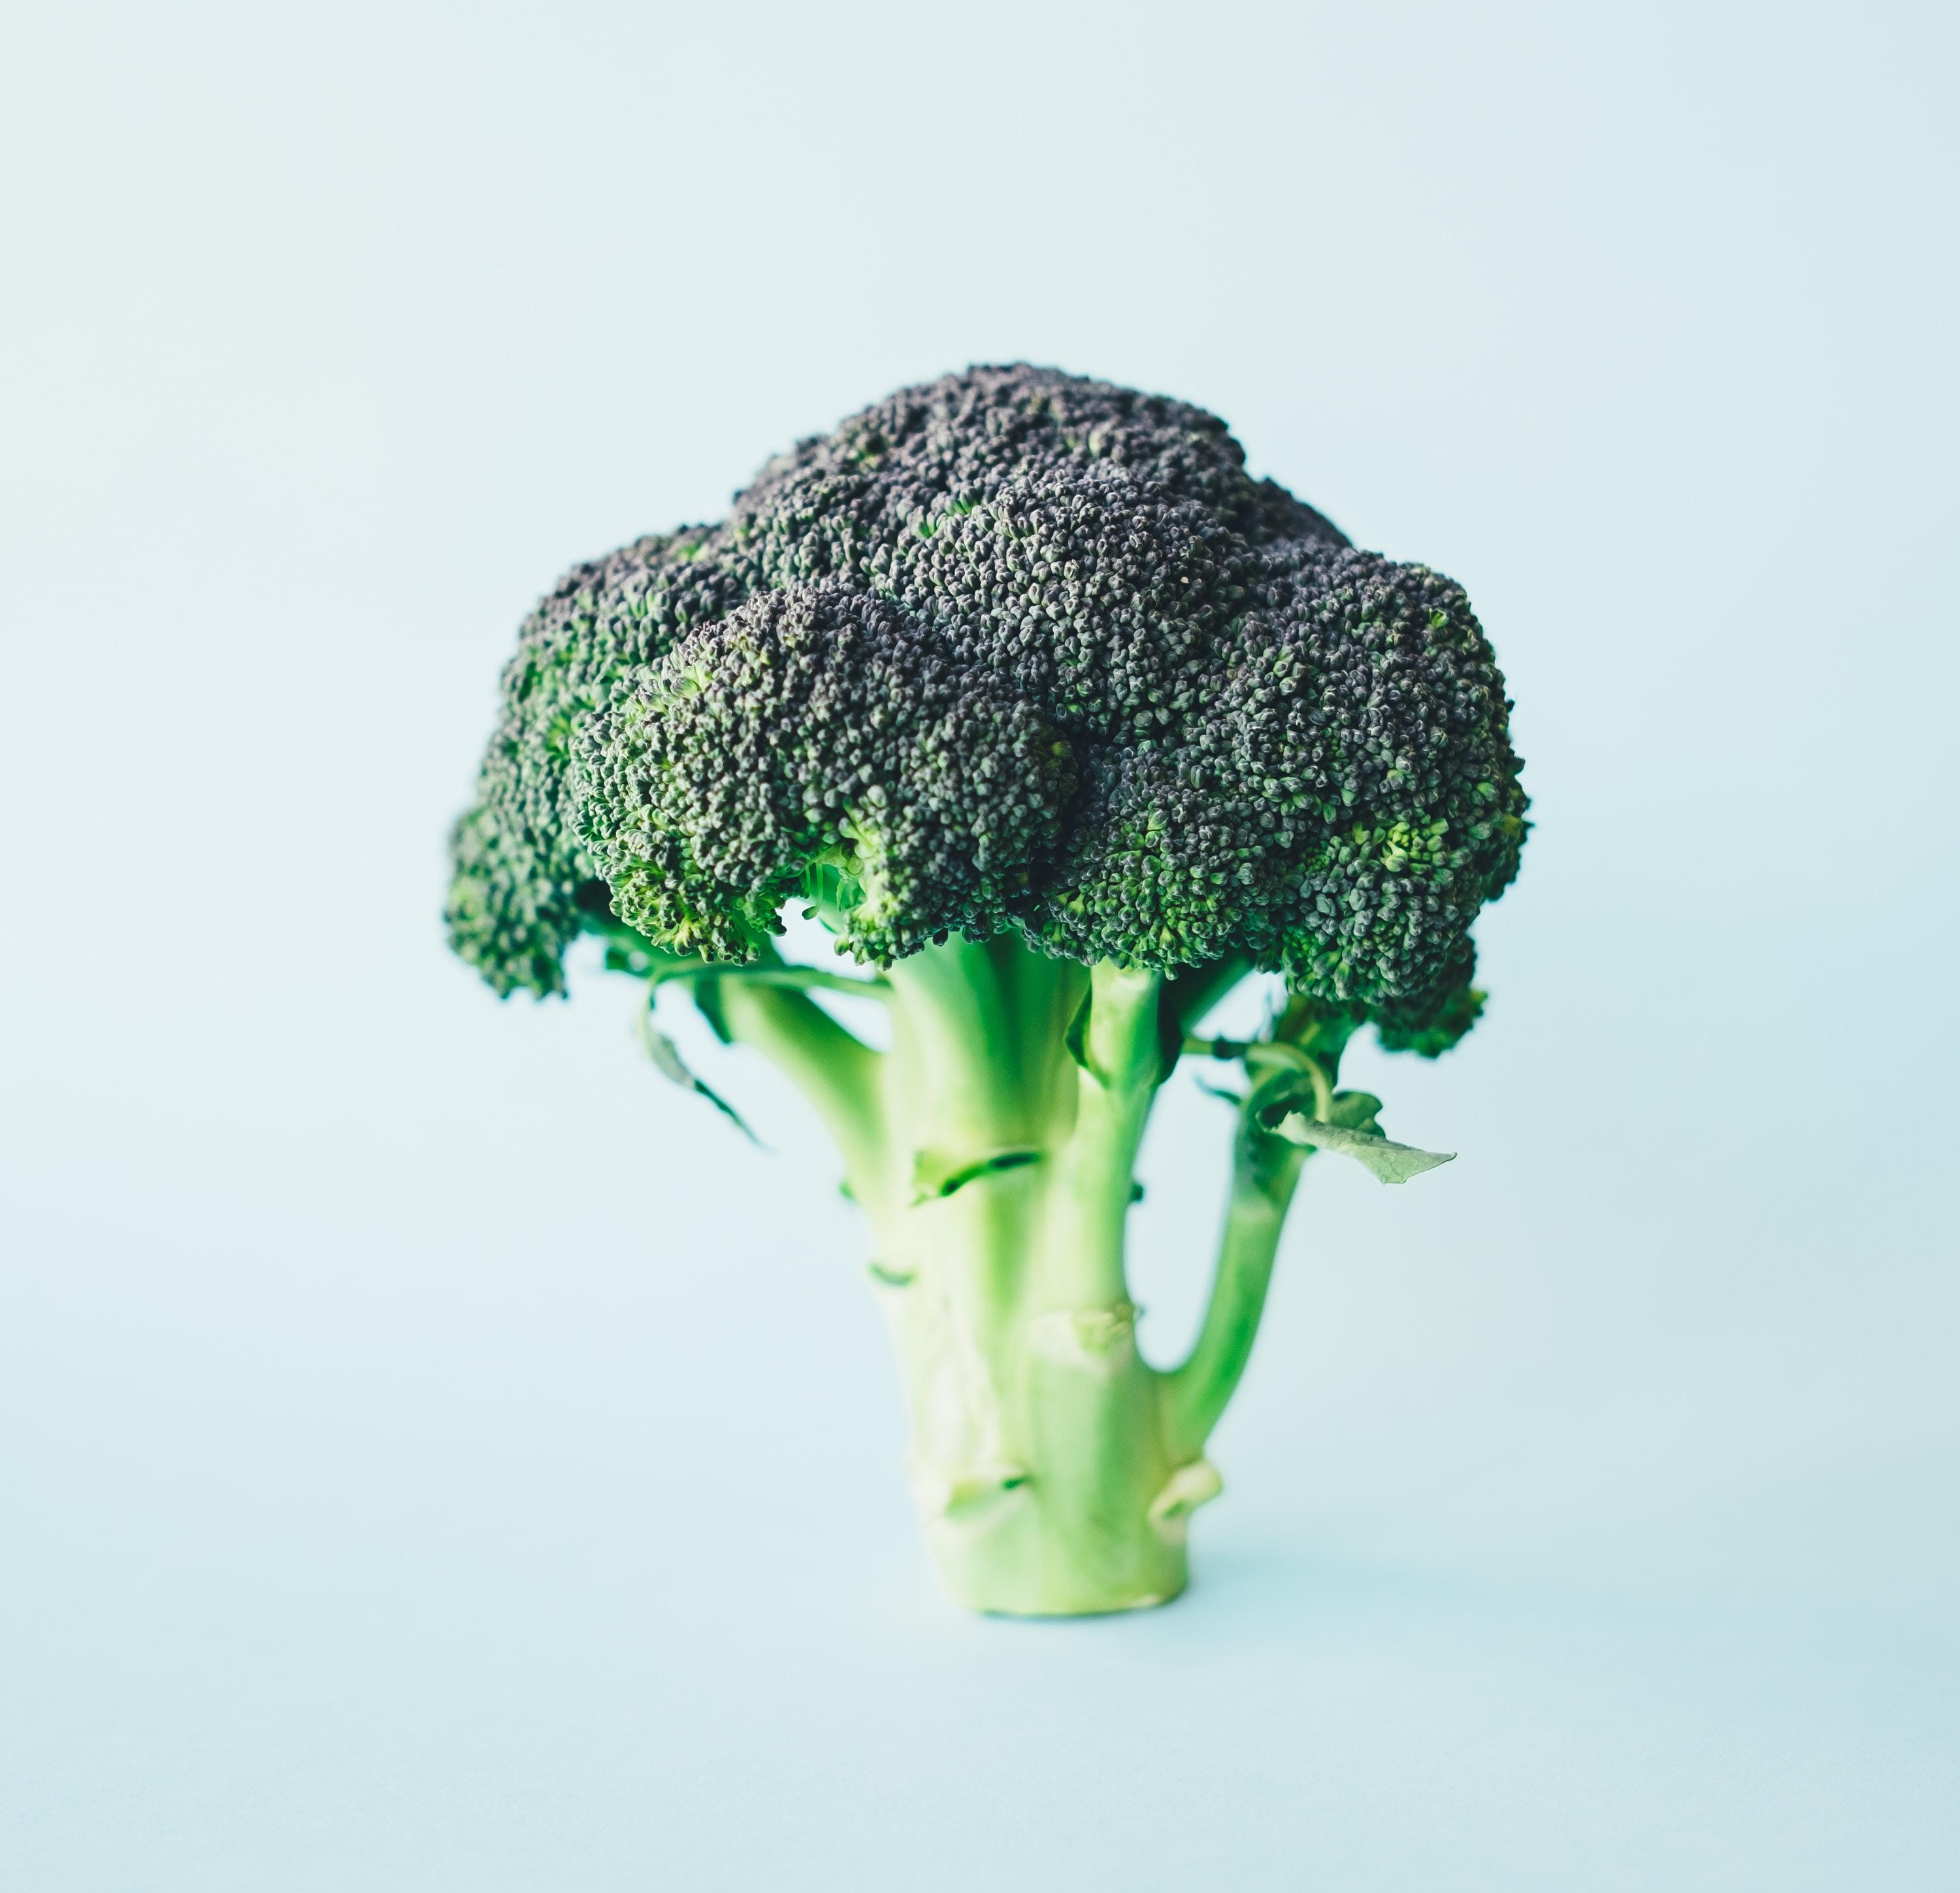 Eat broccoli it's healthy for you!